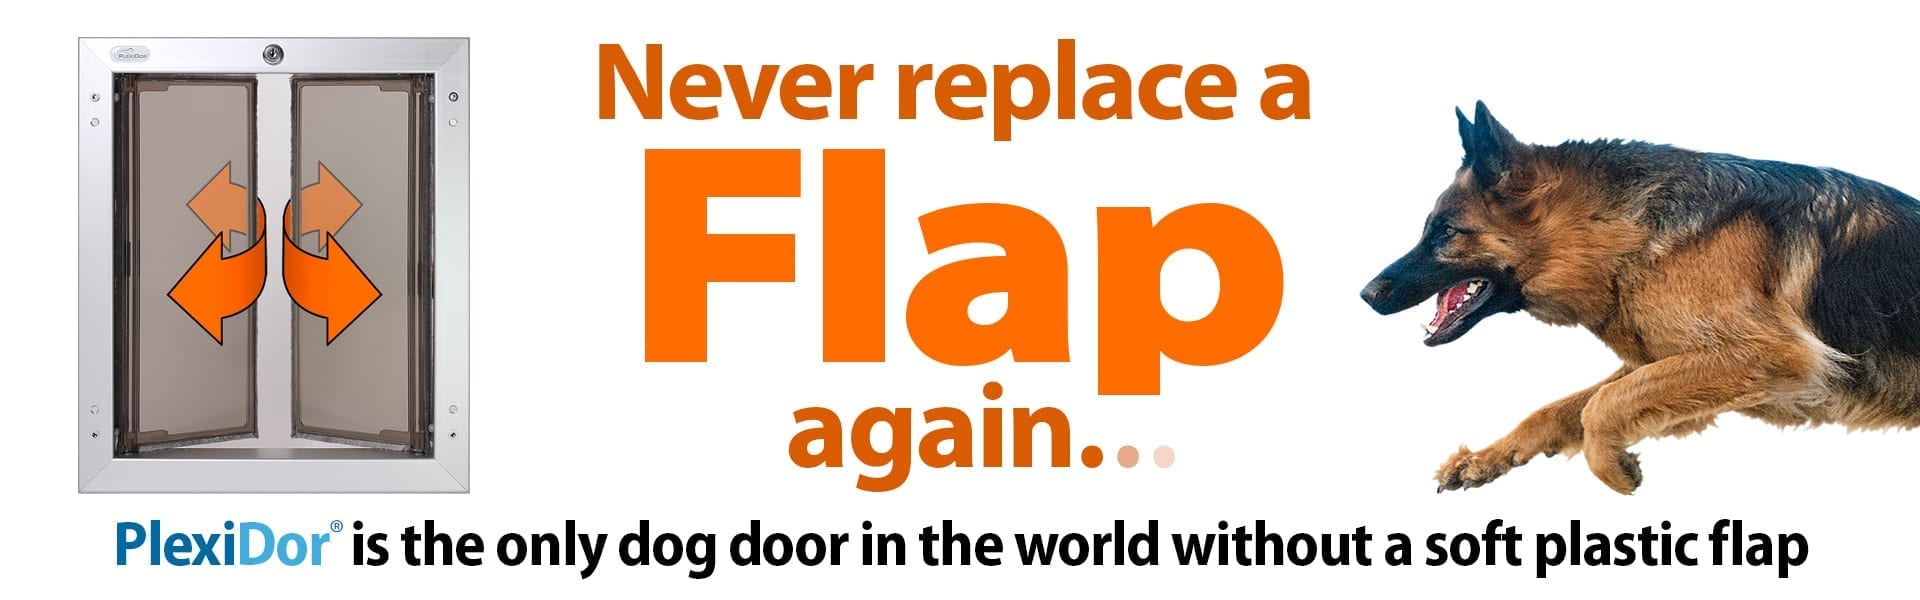 Never replace a flap again.